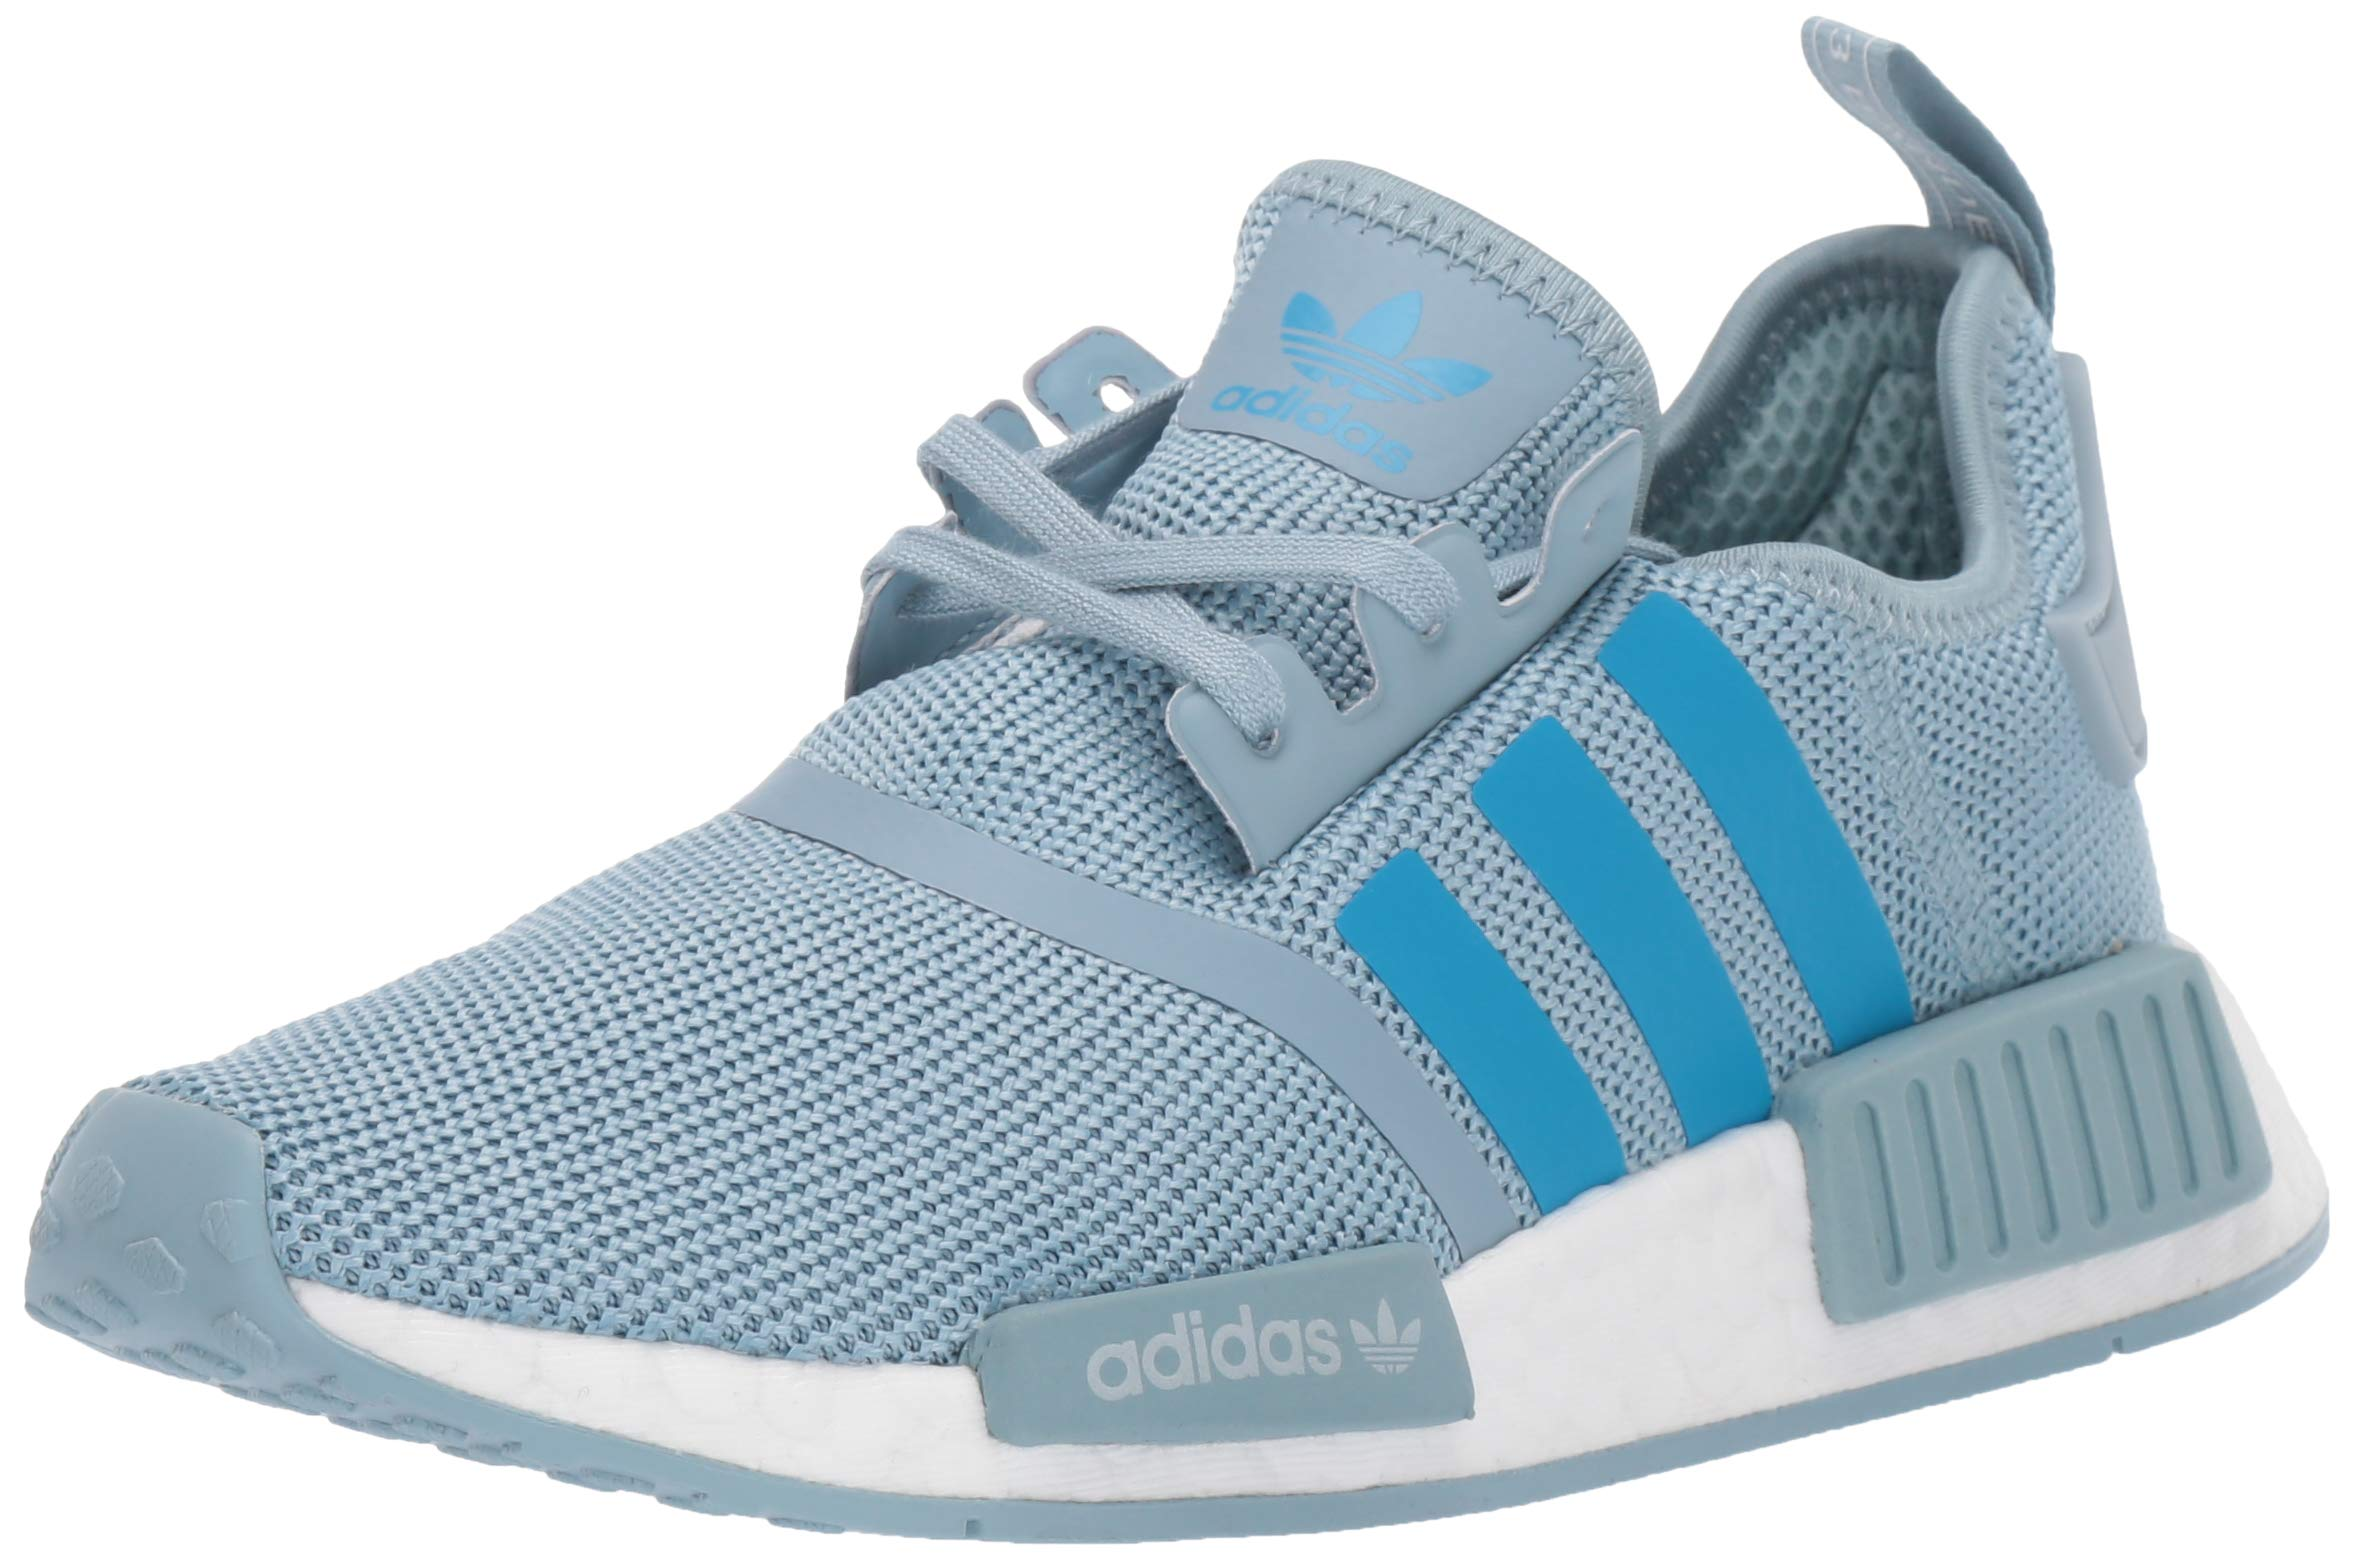 adidas Originals Unisex NMD_R1 Running Shoe, ash Grey/Shock Cyan/White, 3.5 M US Big Kid by adidas Originals